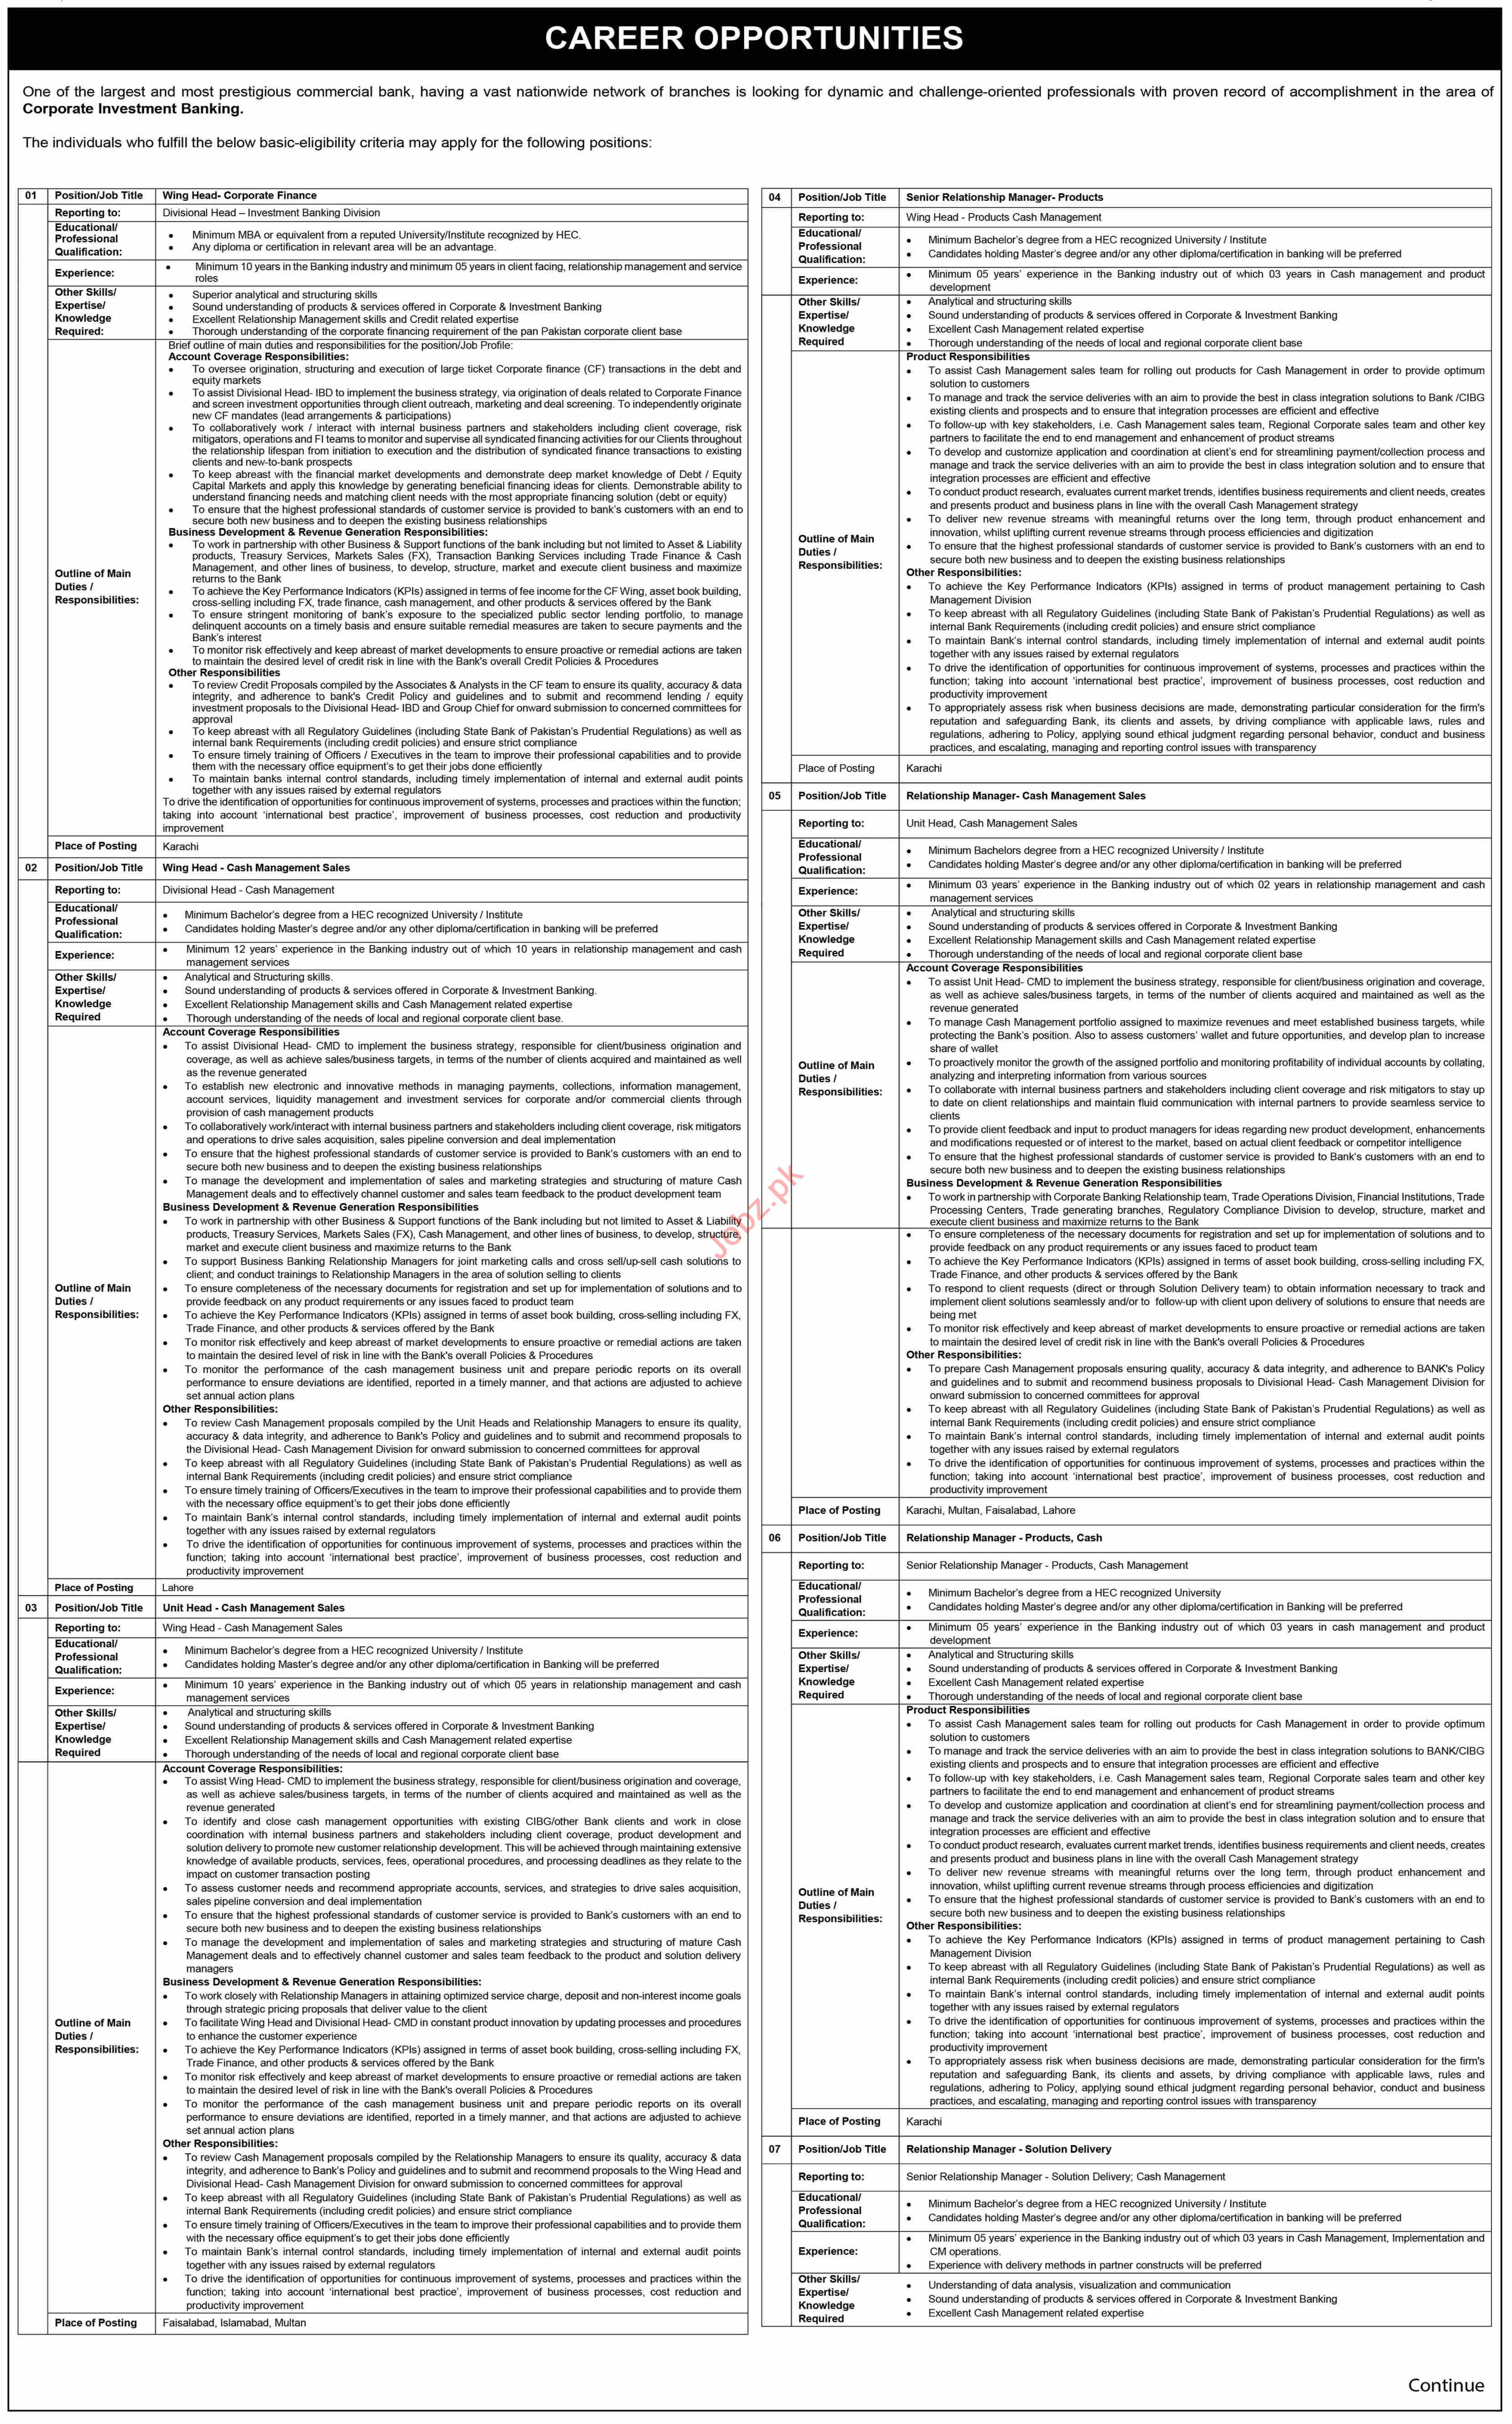 Wing Head Corporate Finance & Relationship Manager Jobs 2021